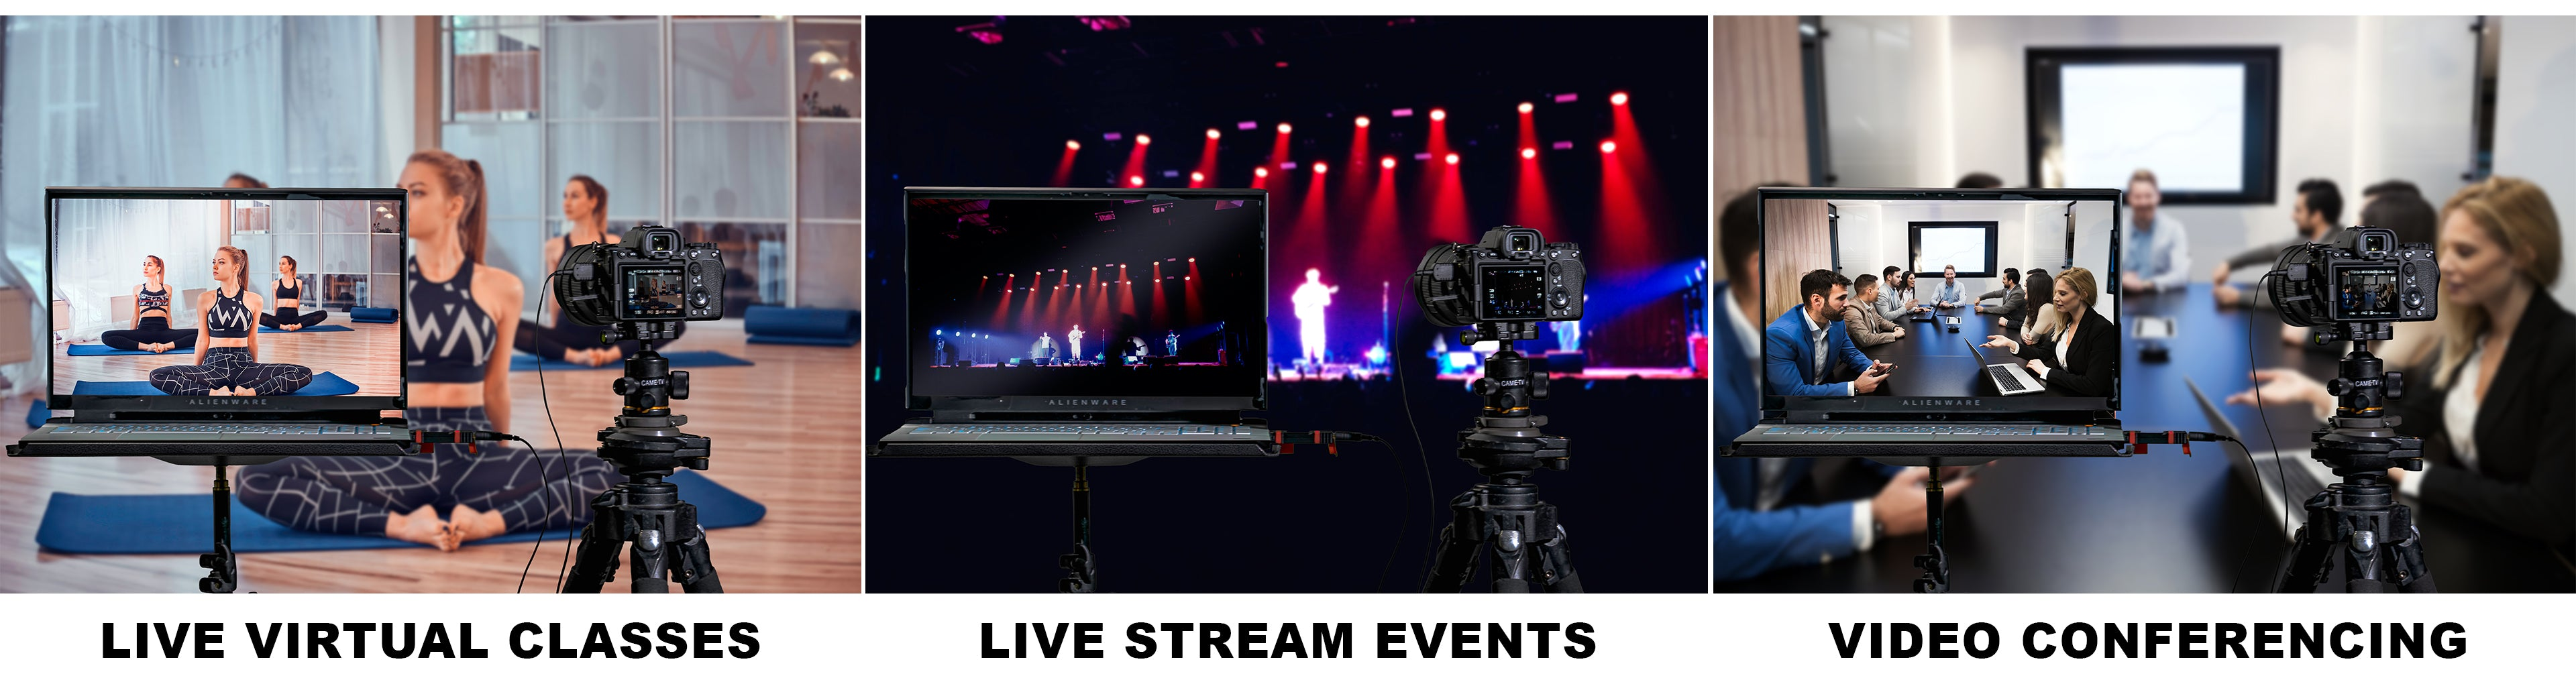 USB Video Audio Capture Adapter for Live Stream